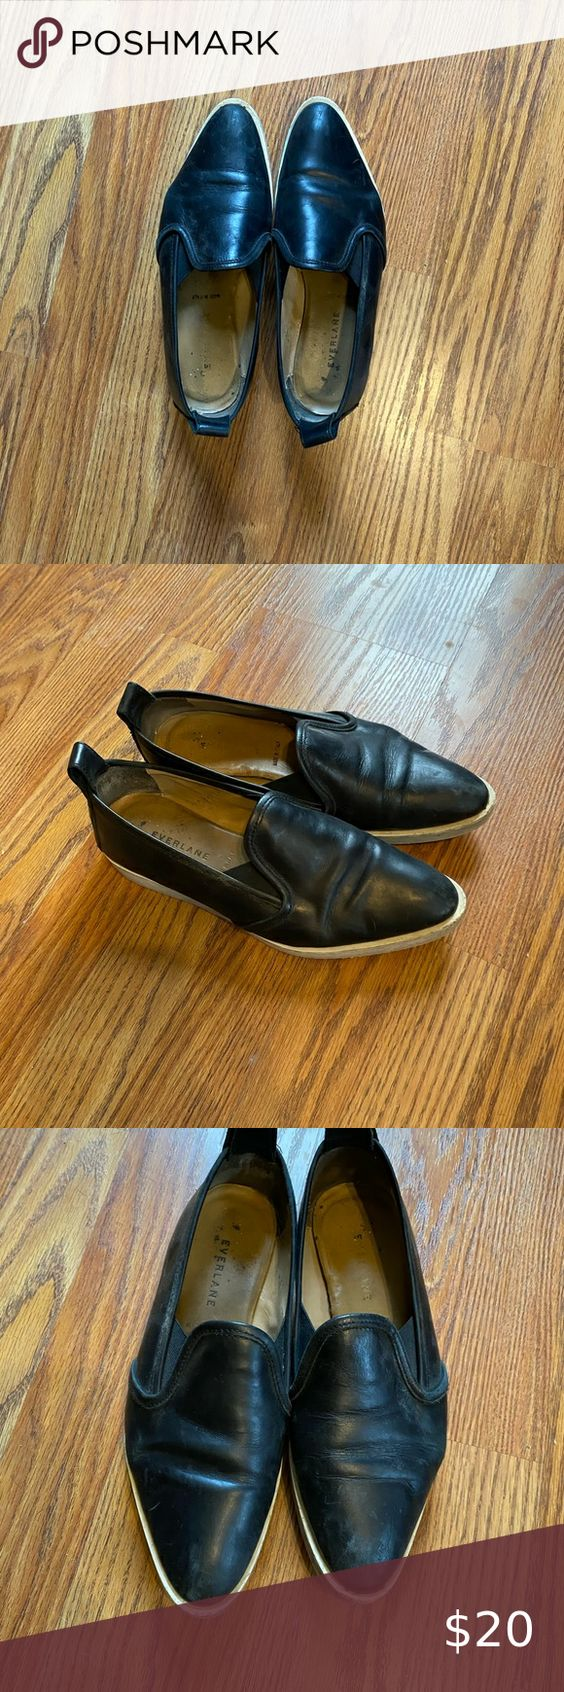 Black Everlane Leather Street Shoe Cute Versatile Black Slip On Shoe From Everlane Used With Visible Signs O Everlane Leather Street Shoes Black Slip On Shoes [ 1692 x 564 Pixel ]